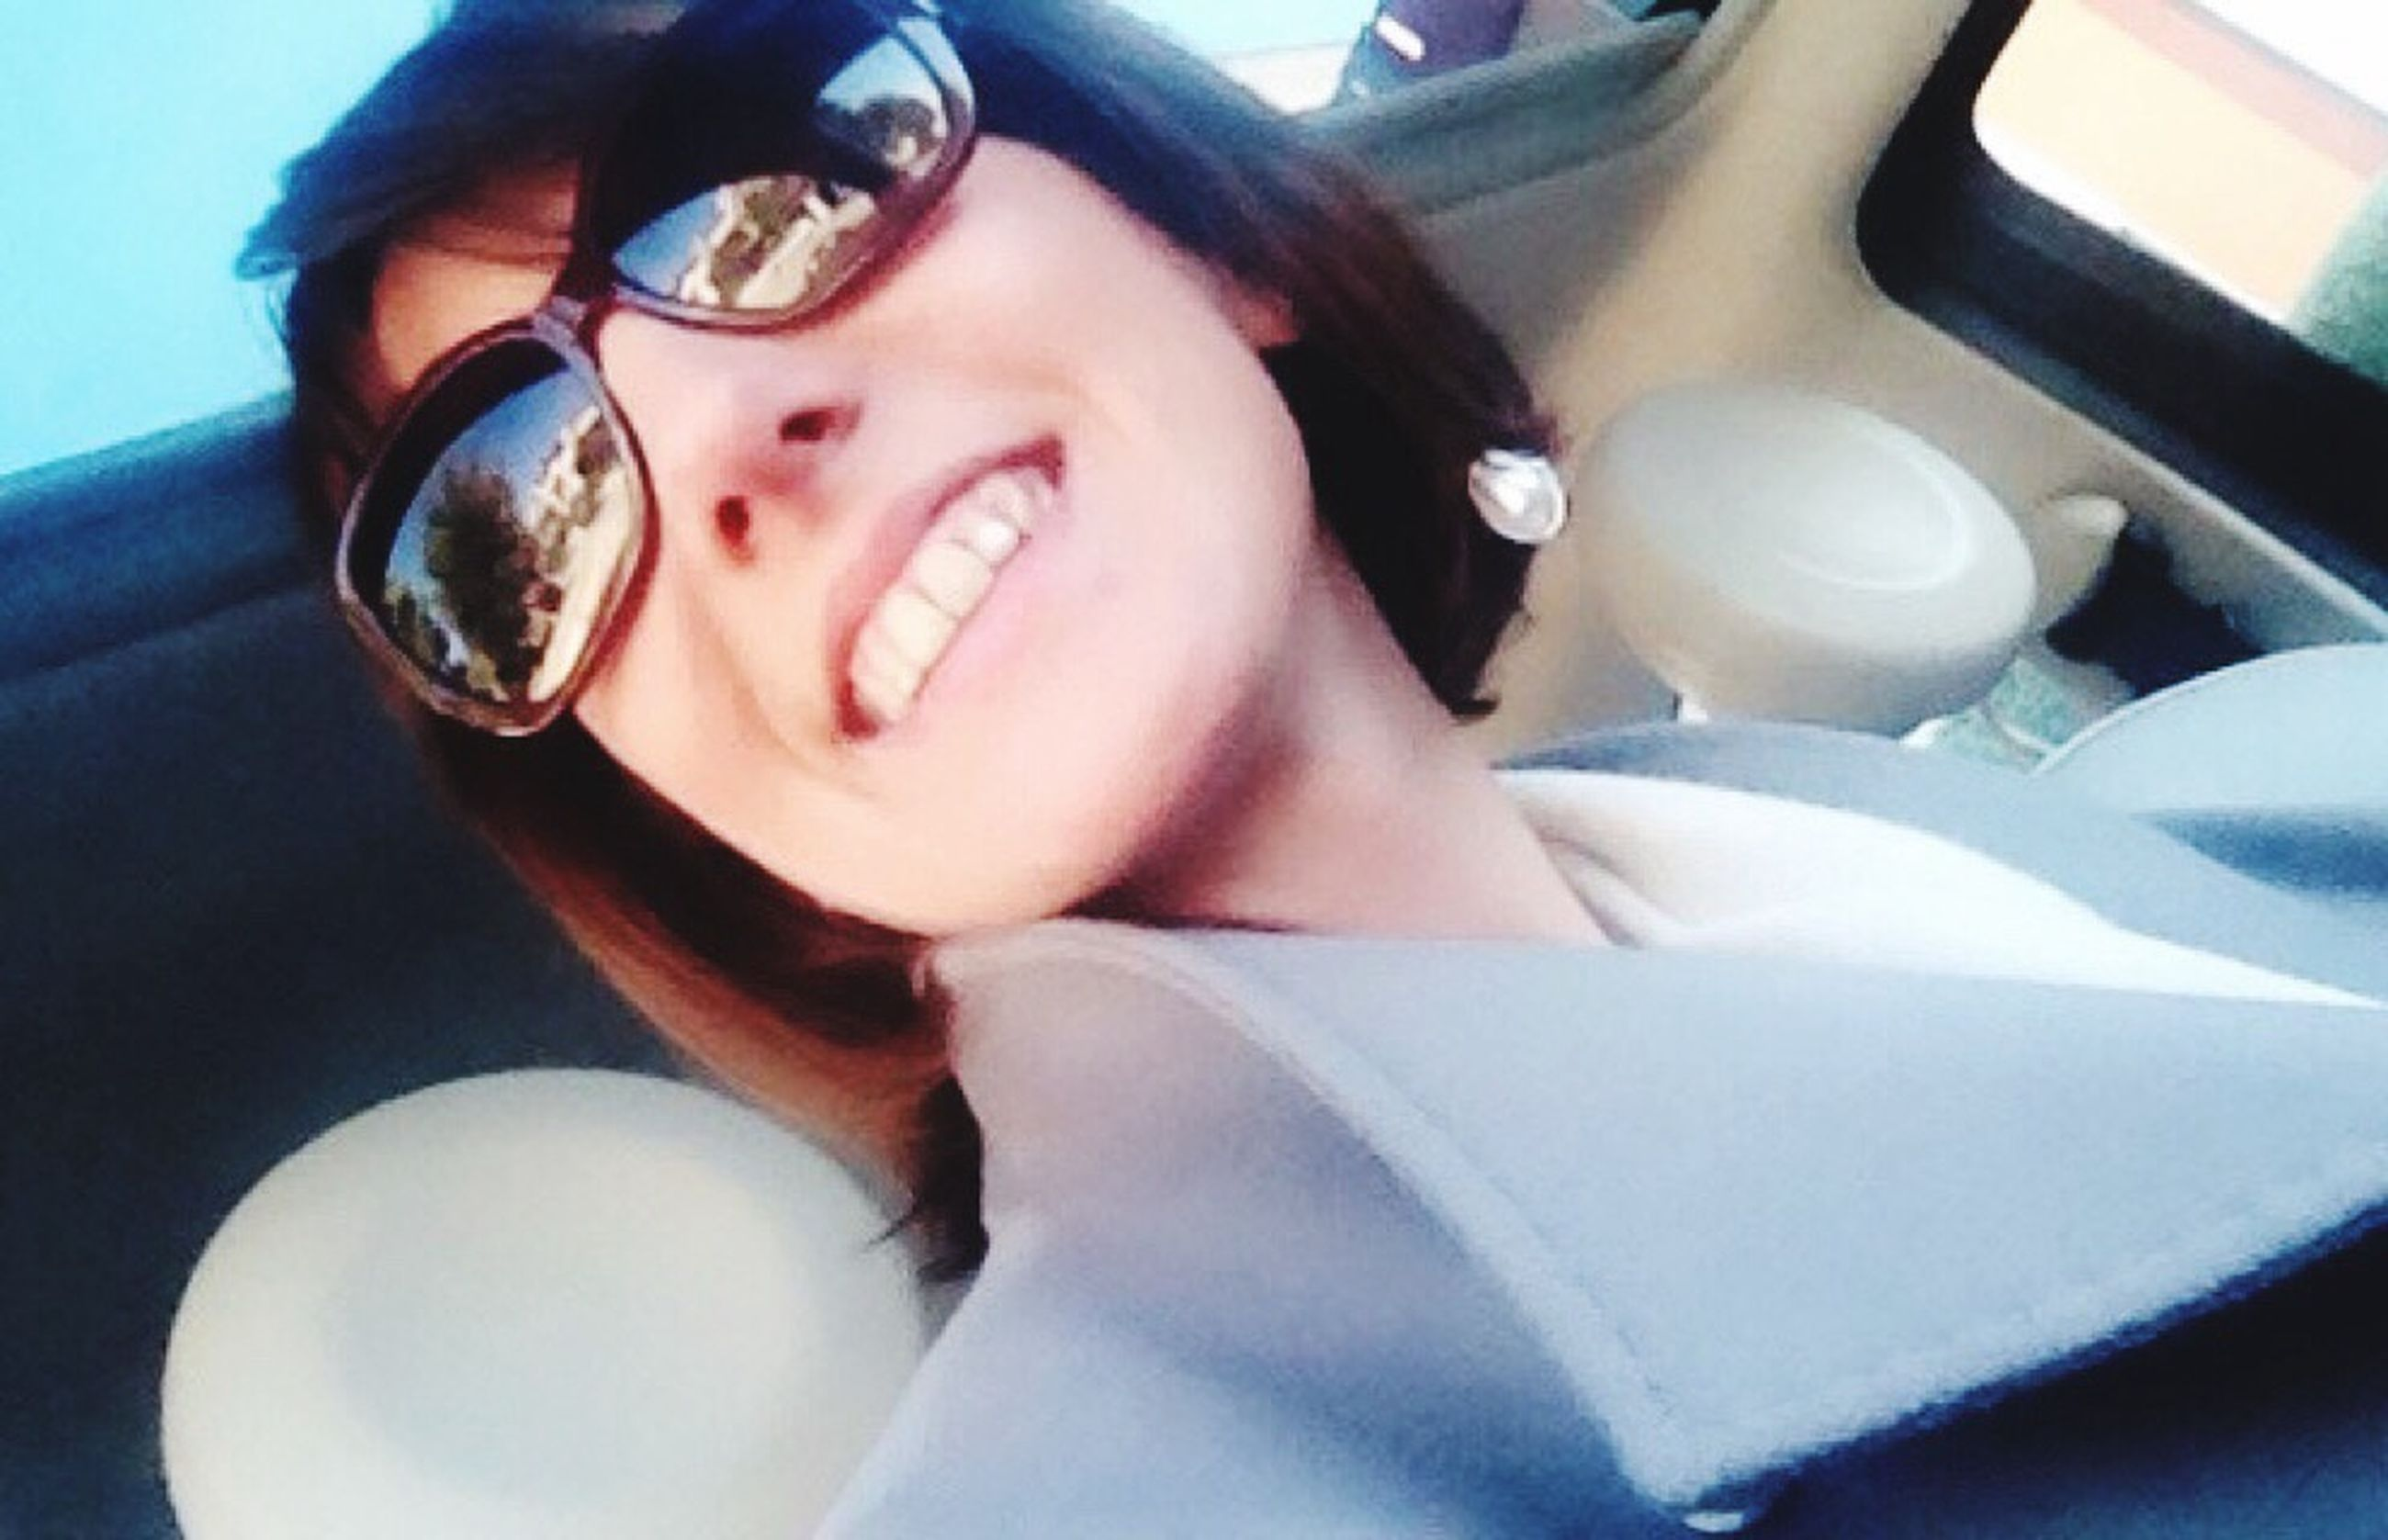 indoors, sunglasses, car, person, close-up, looking at camera, land vehicle, food and drink, lifestyles, childhood, portrait, transportation, reflection, eyeglasses, table, leisure activity, sitting, front view